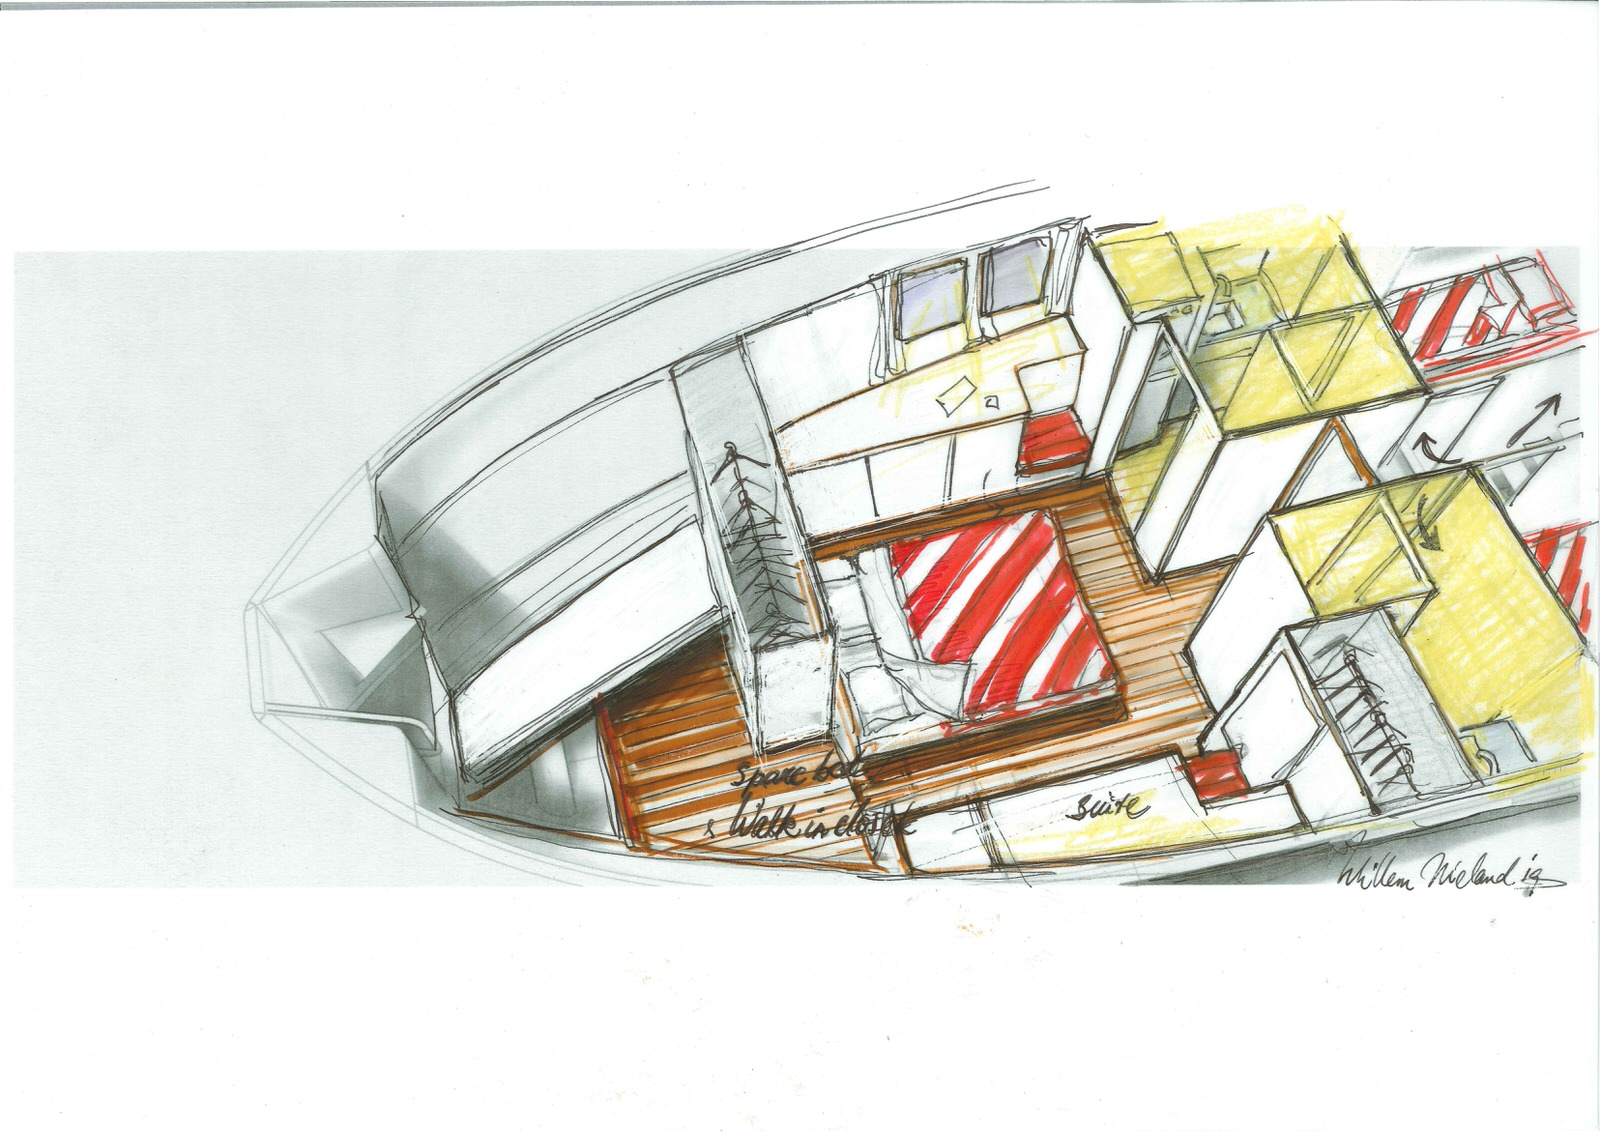 CRUISE SHIP side 15 Nieland Design HUIZEN010